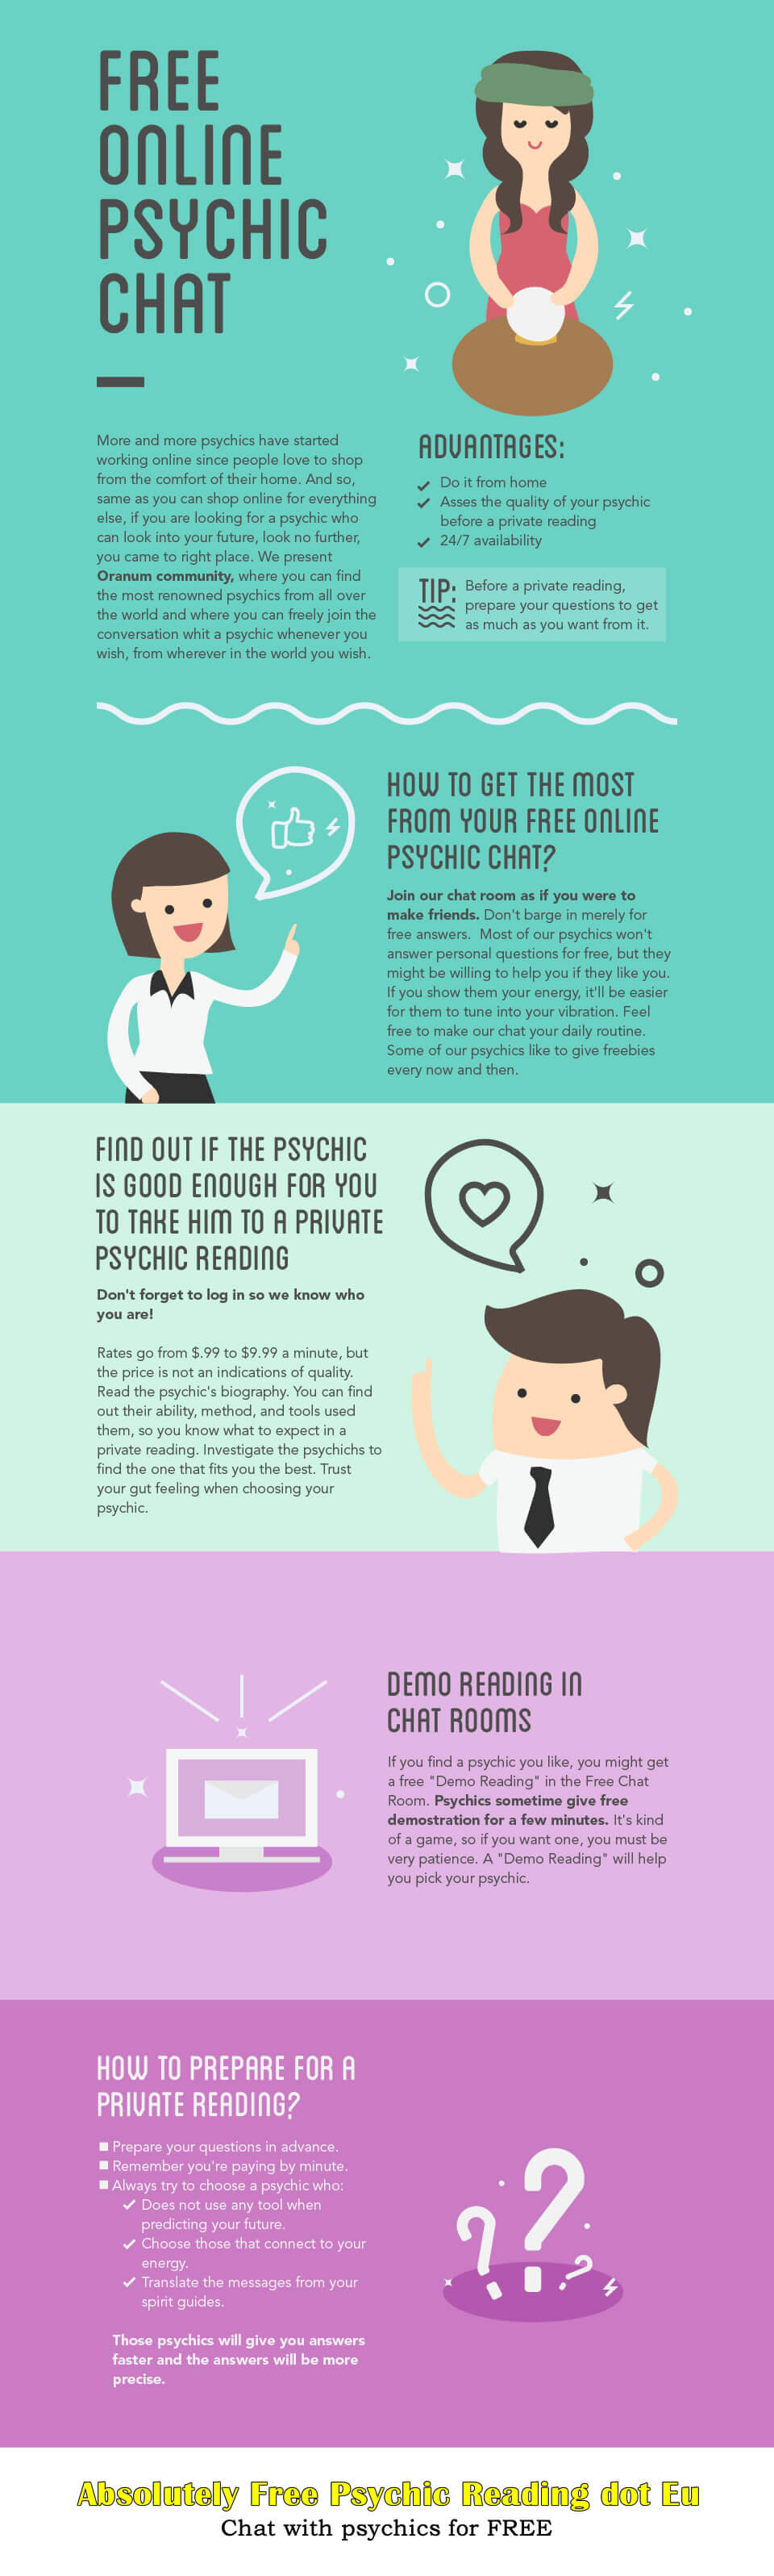 Infographic absolutely free psychic reading